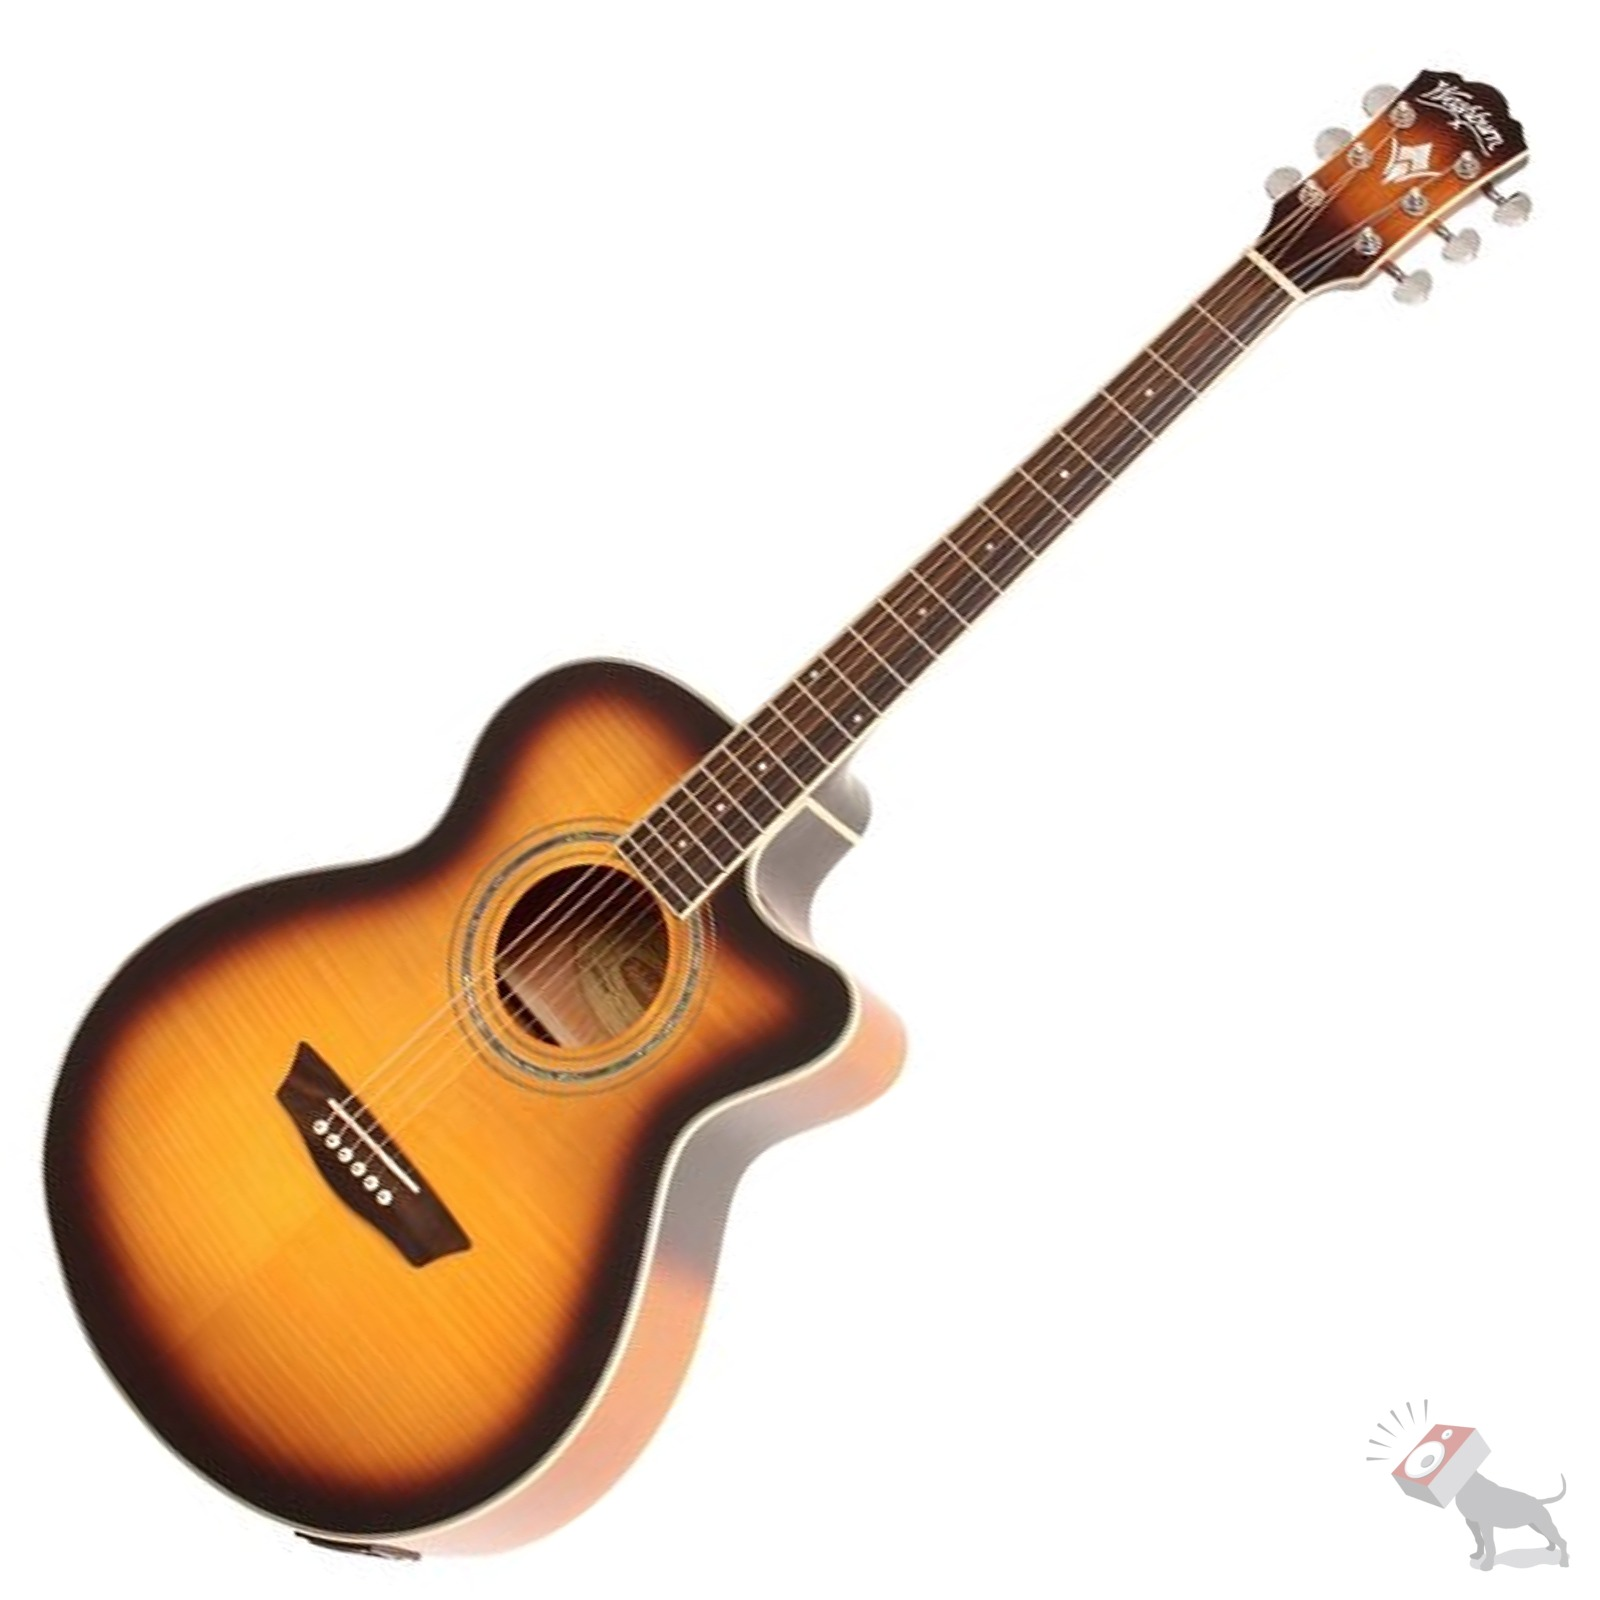 washburn ea15 atb festival series acoustic electric tobacco sunburst guitar eq ebay. Black Bedroom Furniture Sets. Home Design Ideas